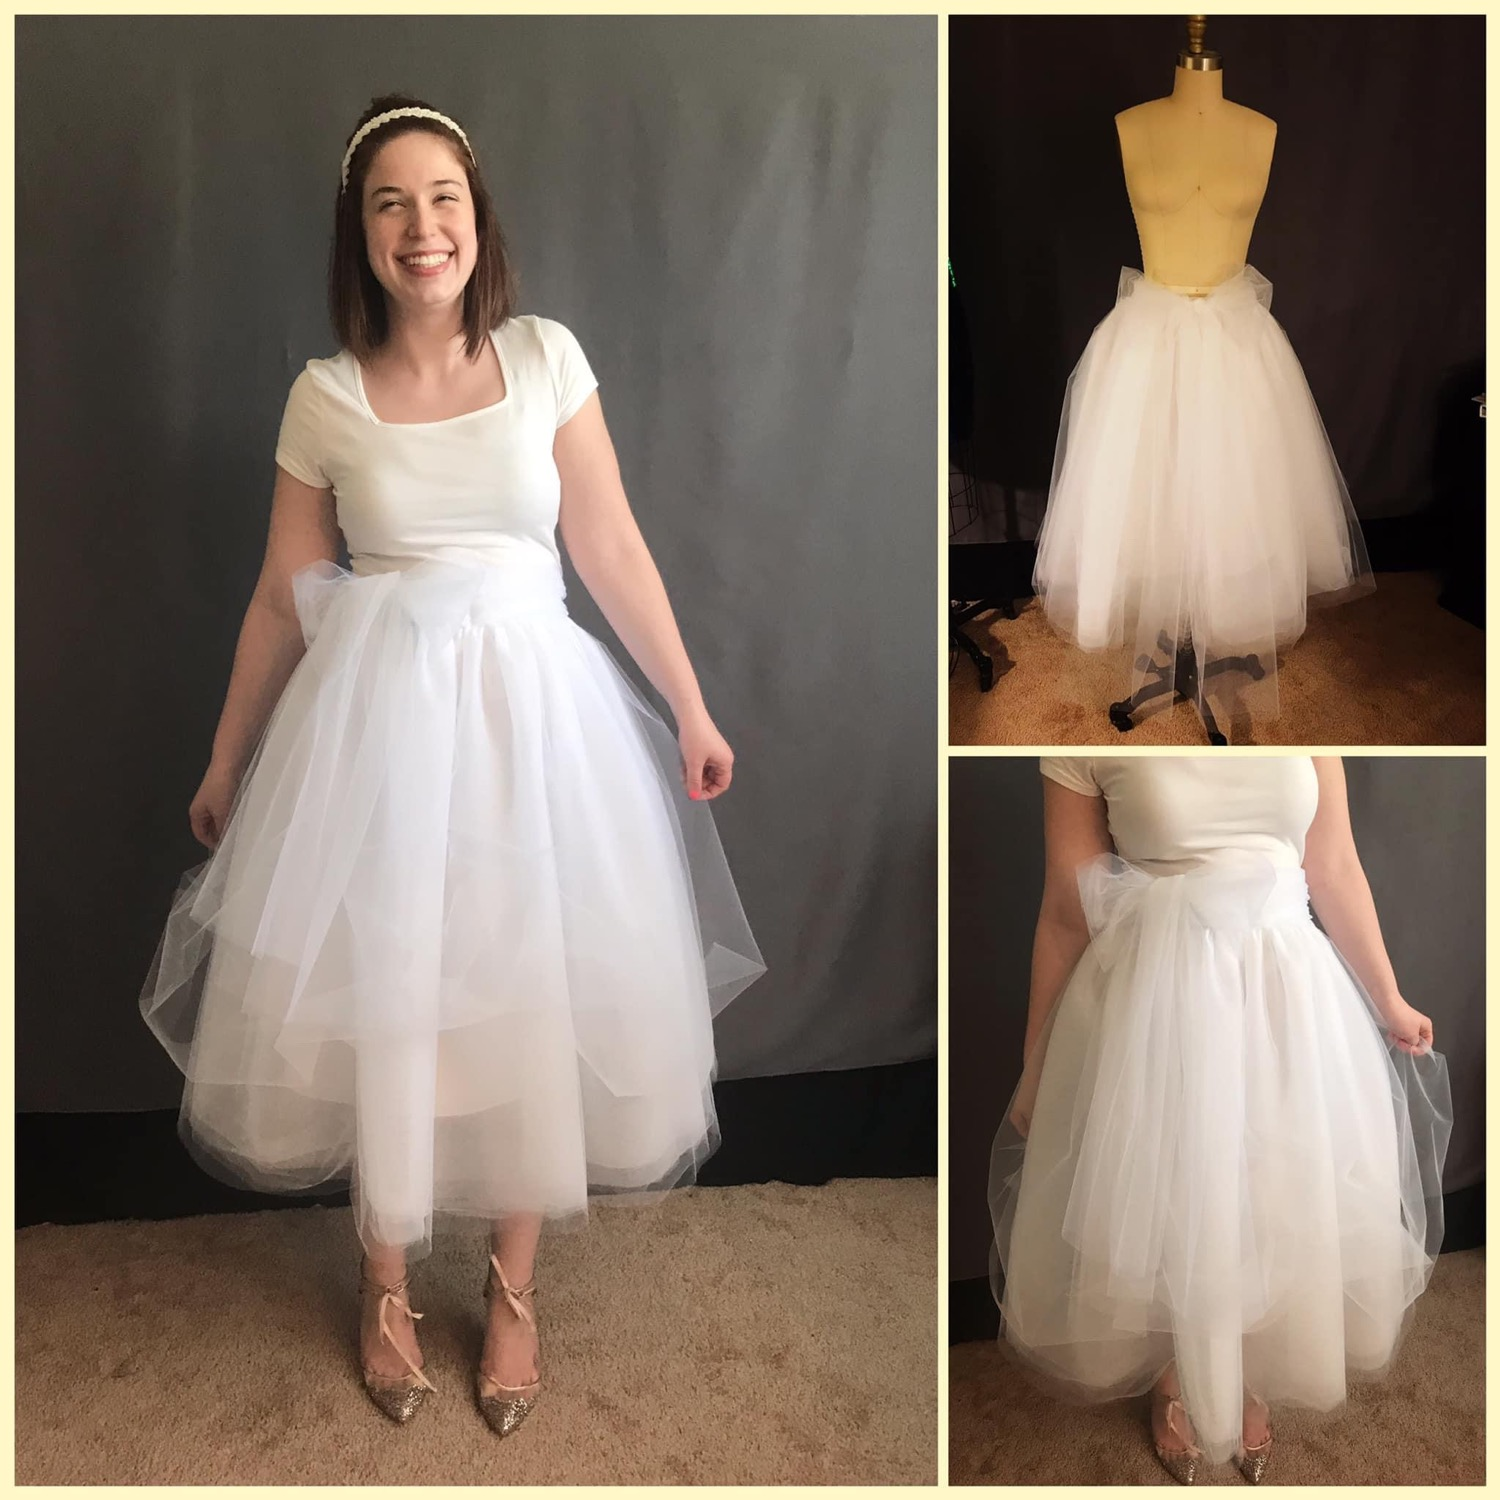 custom made wedding skirt by seamstress Lena in Orlando